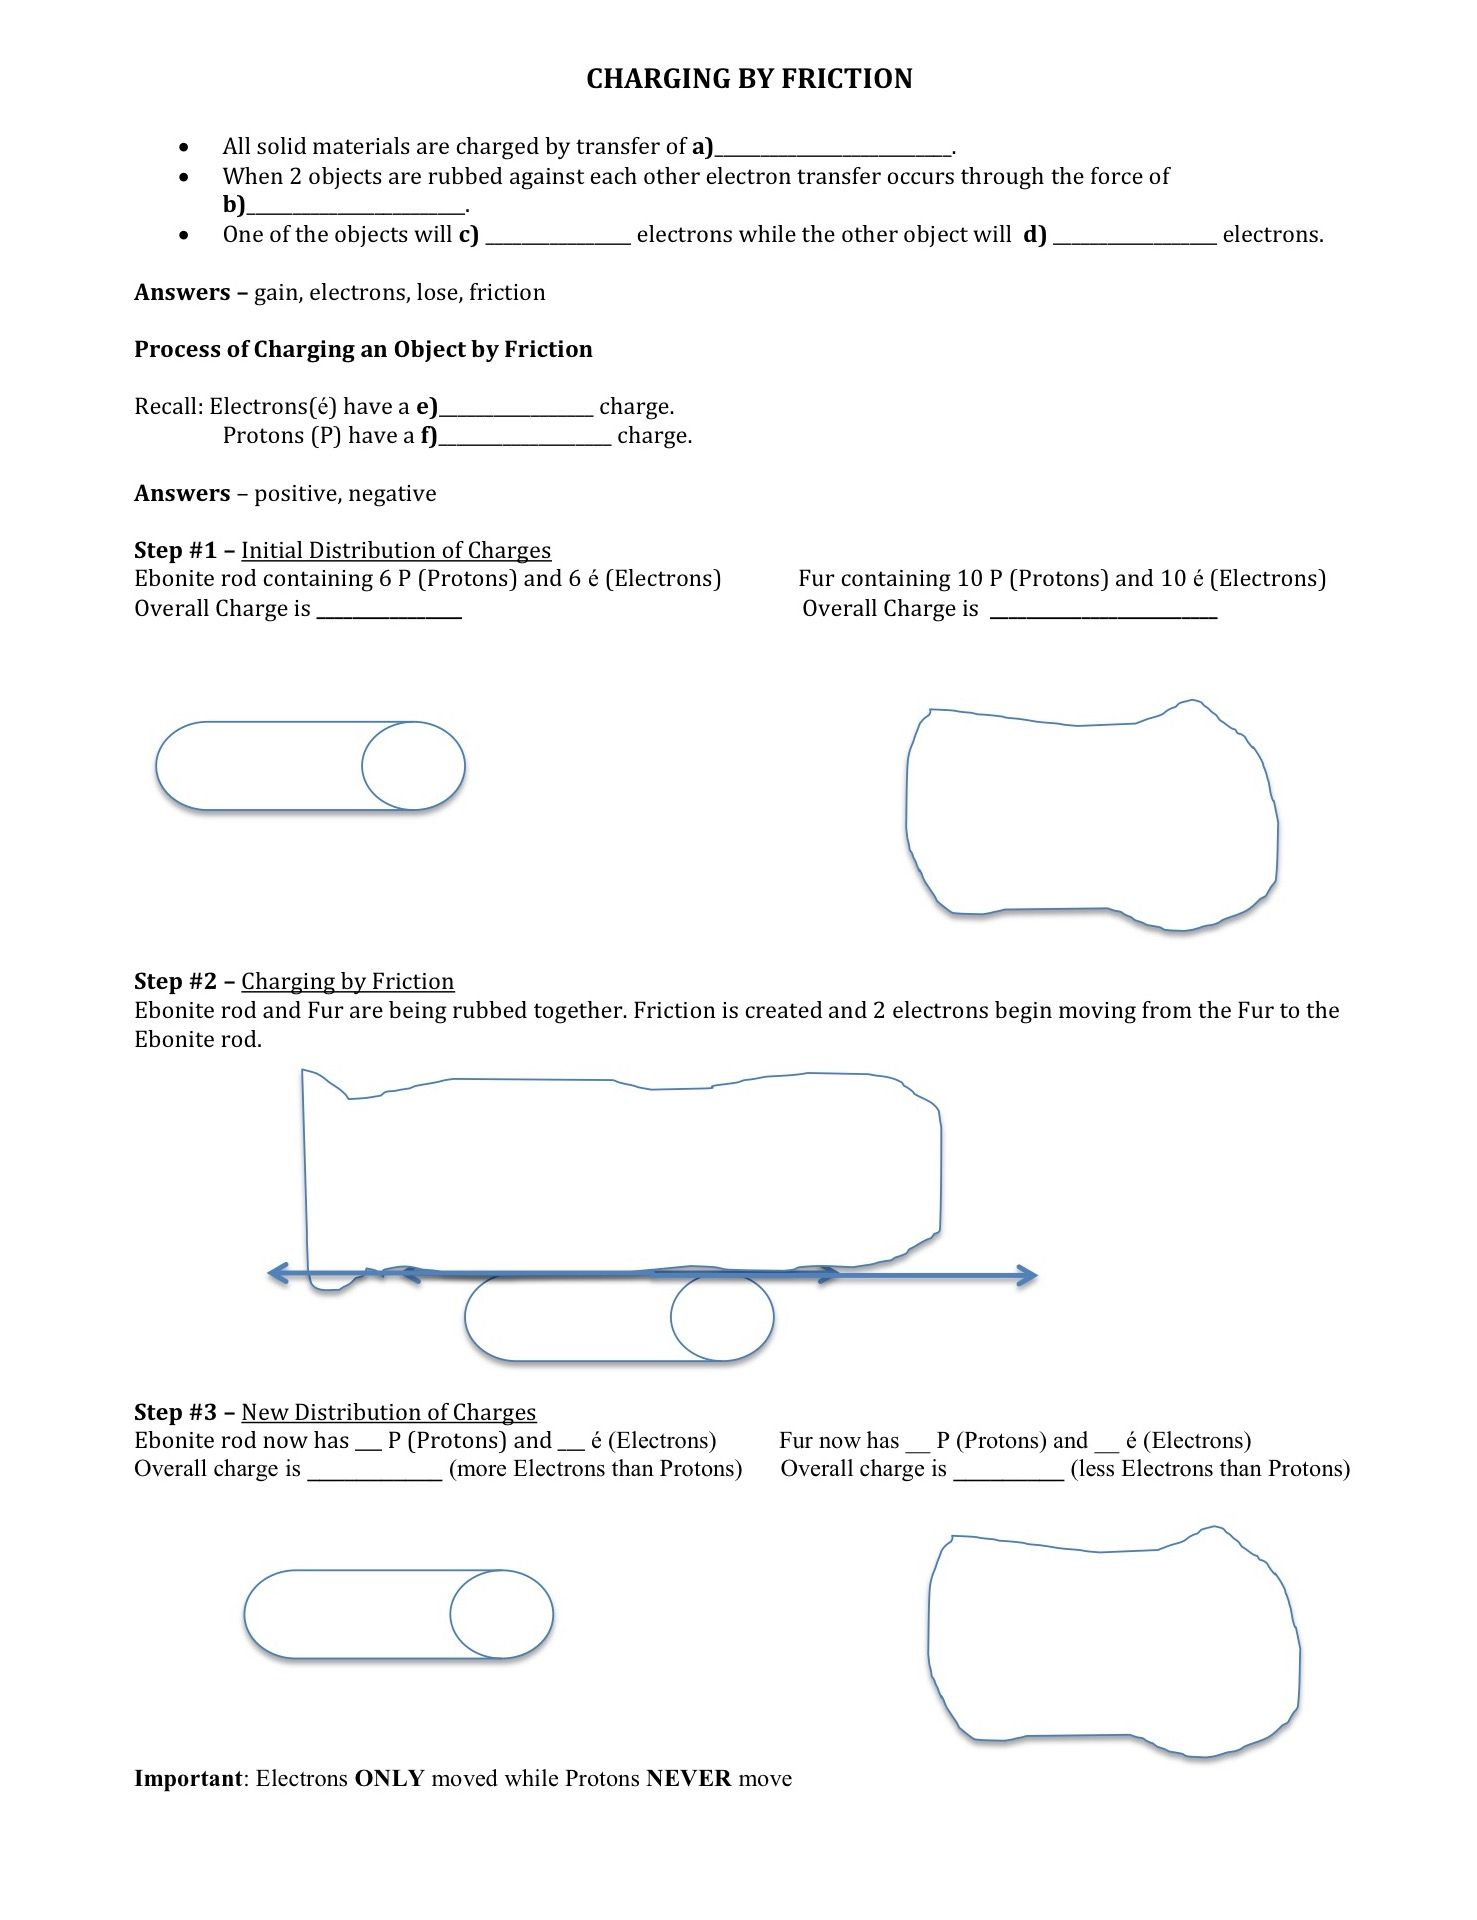 hight resolution of Friction Worksheets For Elementary   Printable Worksheets and Activities  for Teachers